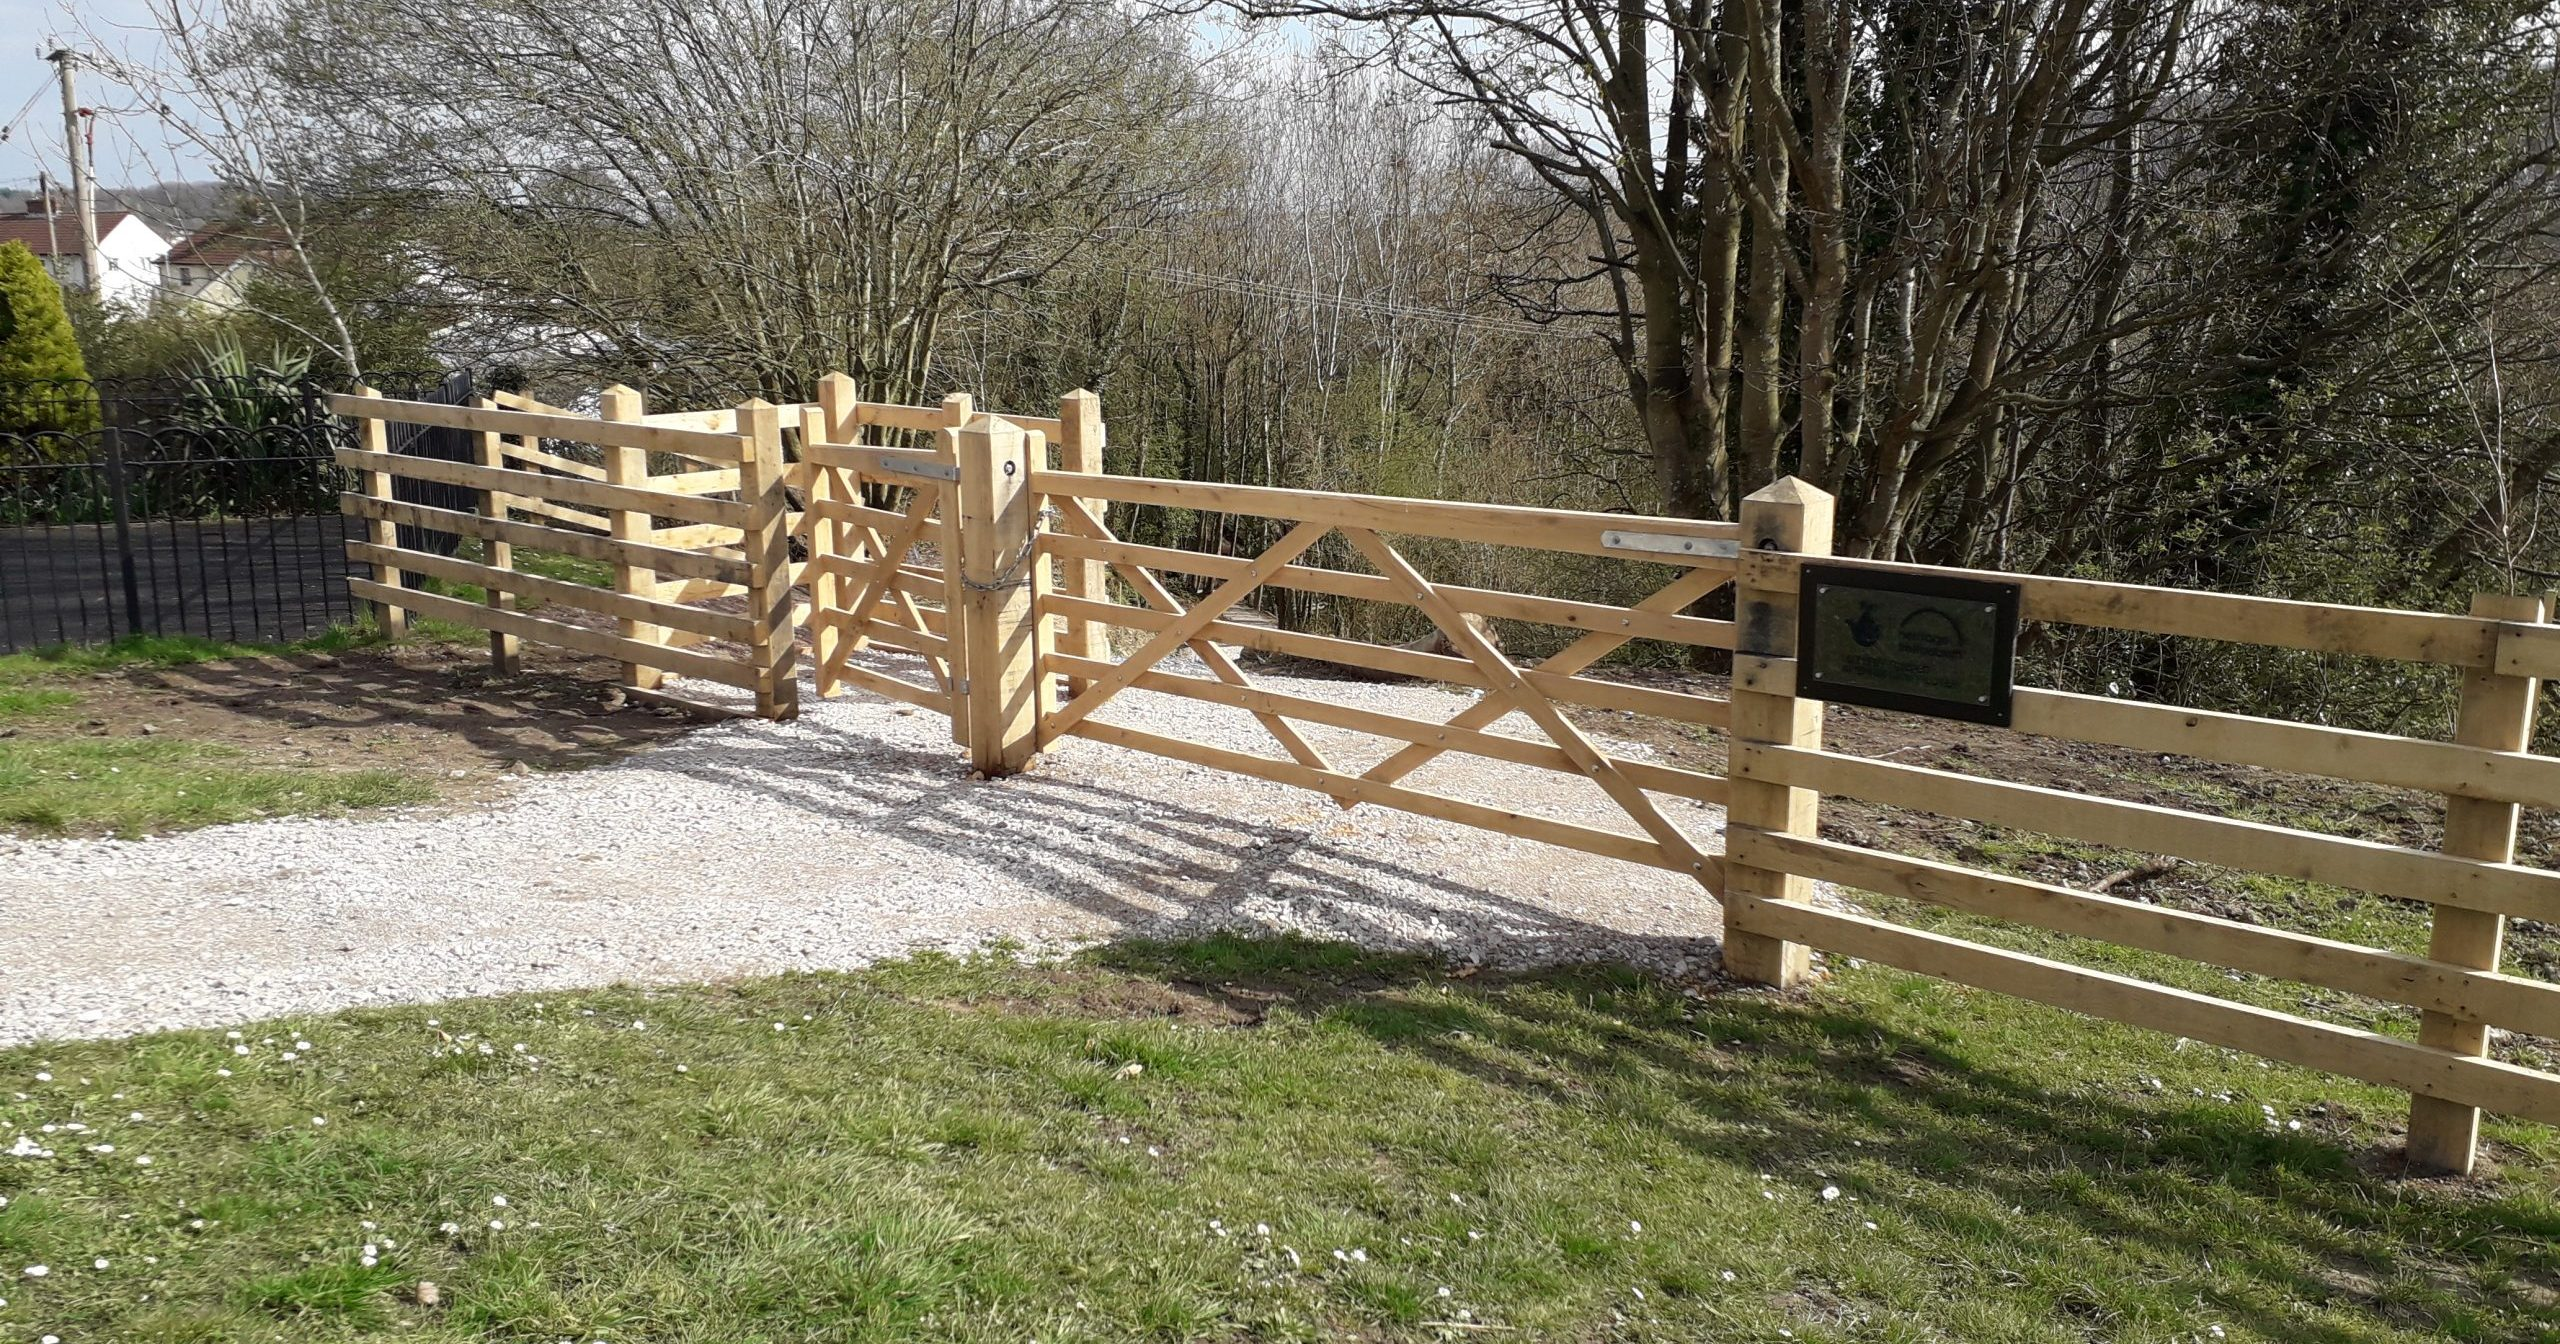 Picture of improved access in CLwydian Range and Dee Valley AONB